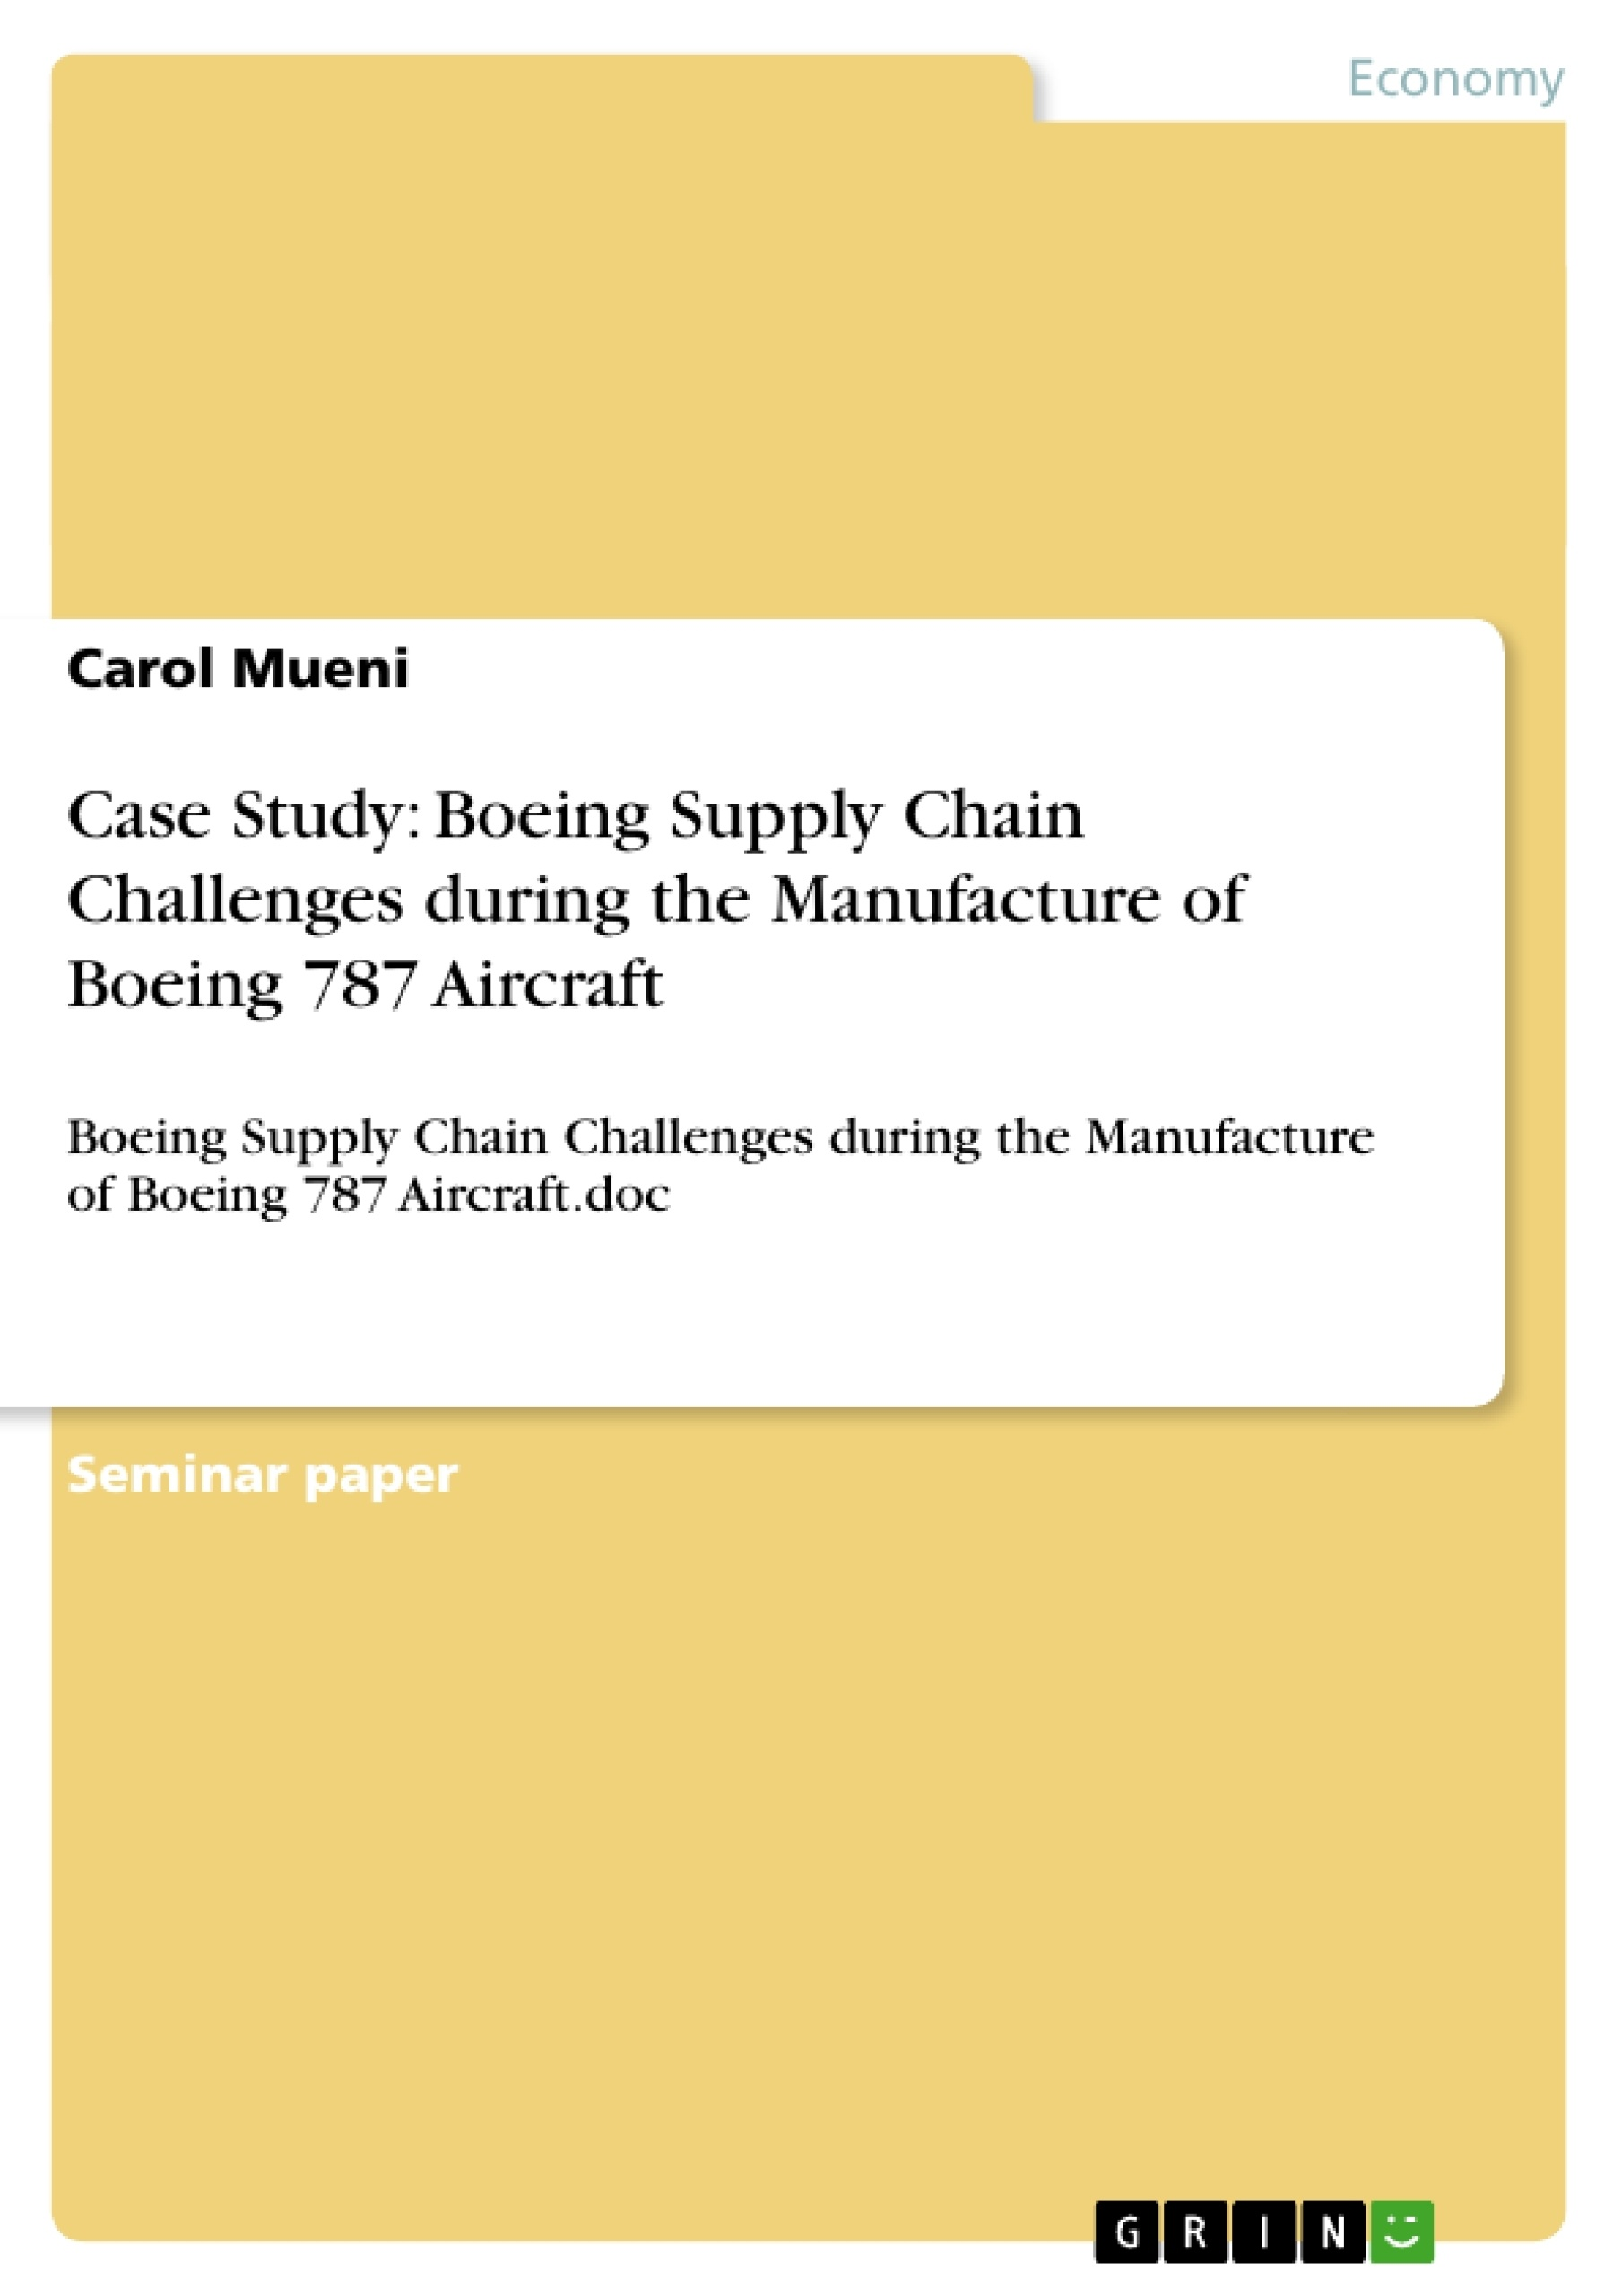 supply chain management and master hog case essay Let us write or edit the essay on your topic supply chain management - bose corporation case study with a personal 20% discount.